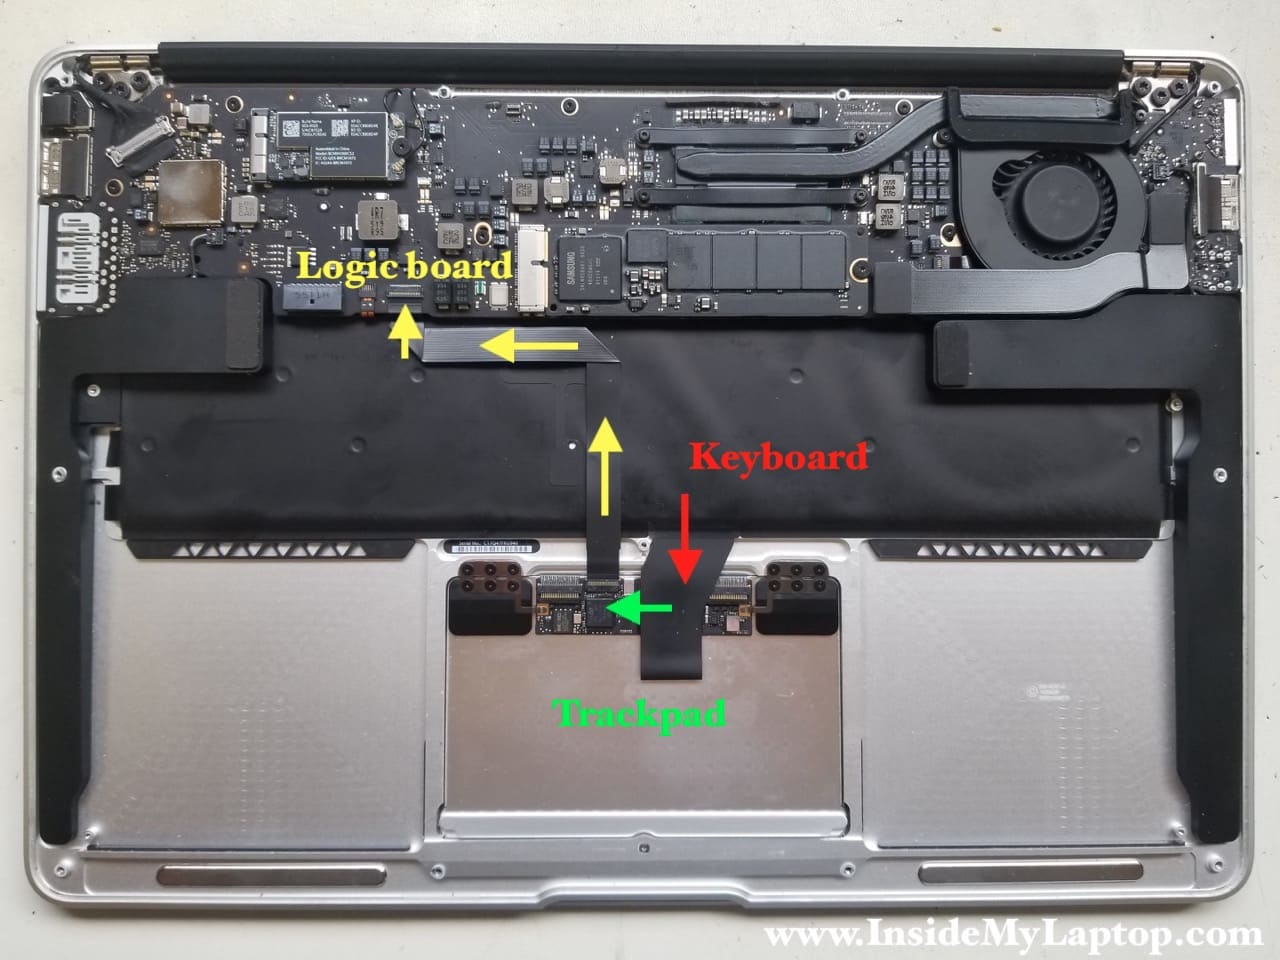 How I fixed trackpad, keyboard after water spill on Macbook